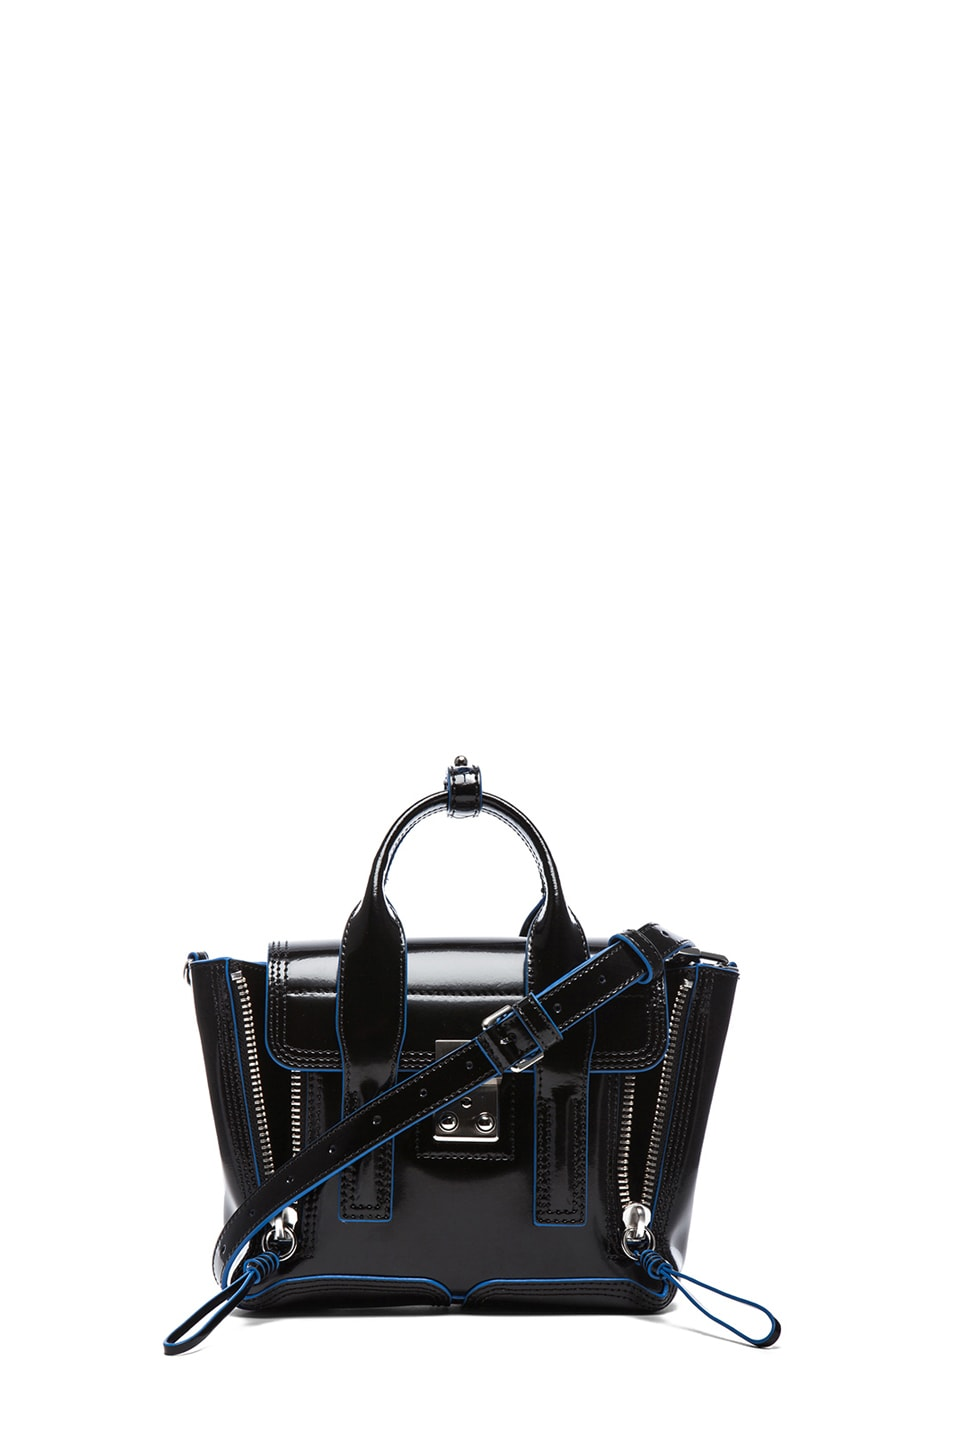 Image 1 of 3.1 phillip lim Mini Pashli Satchel in Black & Dark Navy